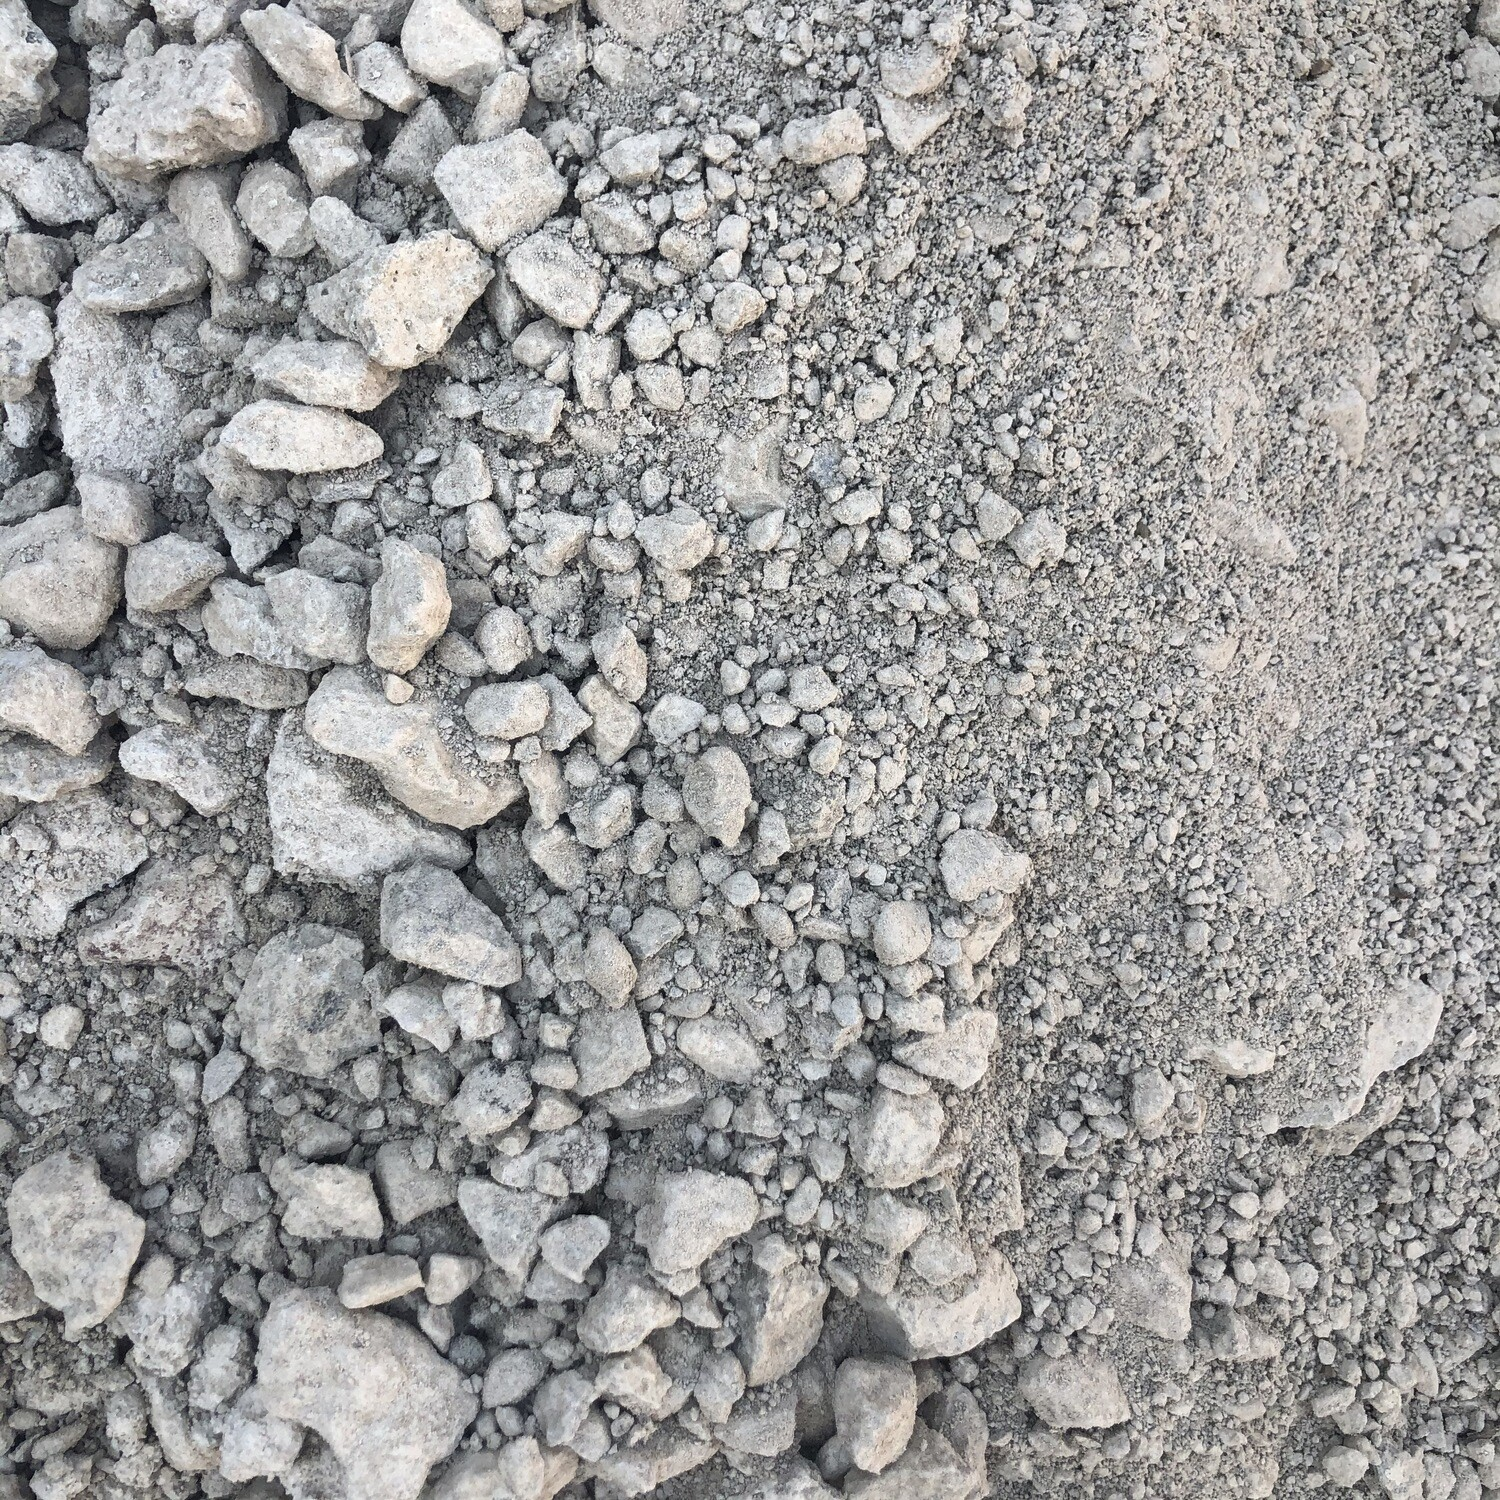 #304 Crushed Concrete